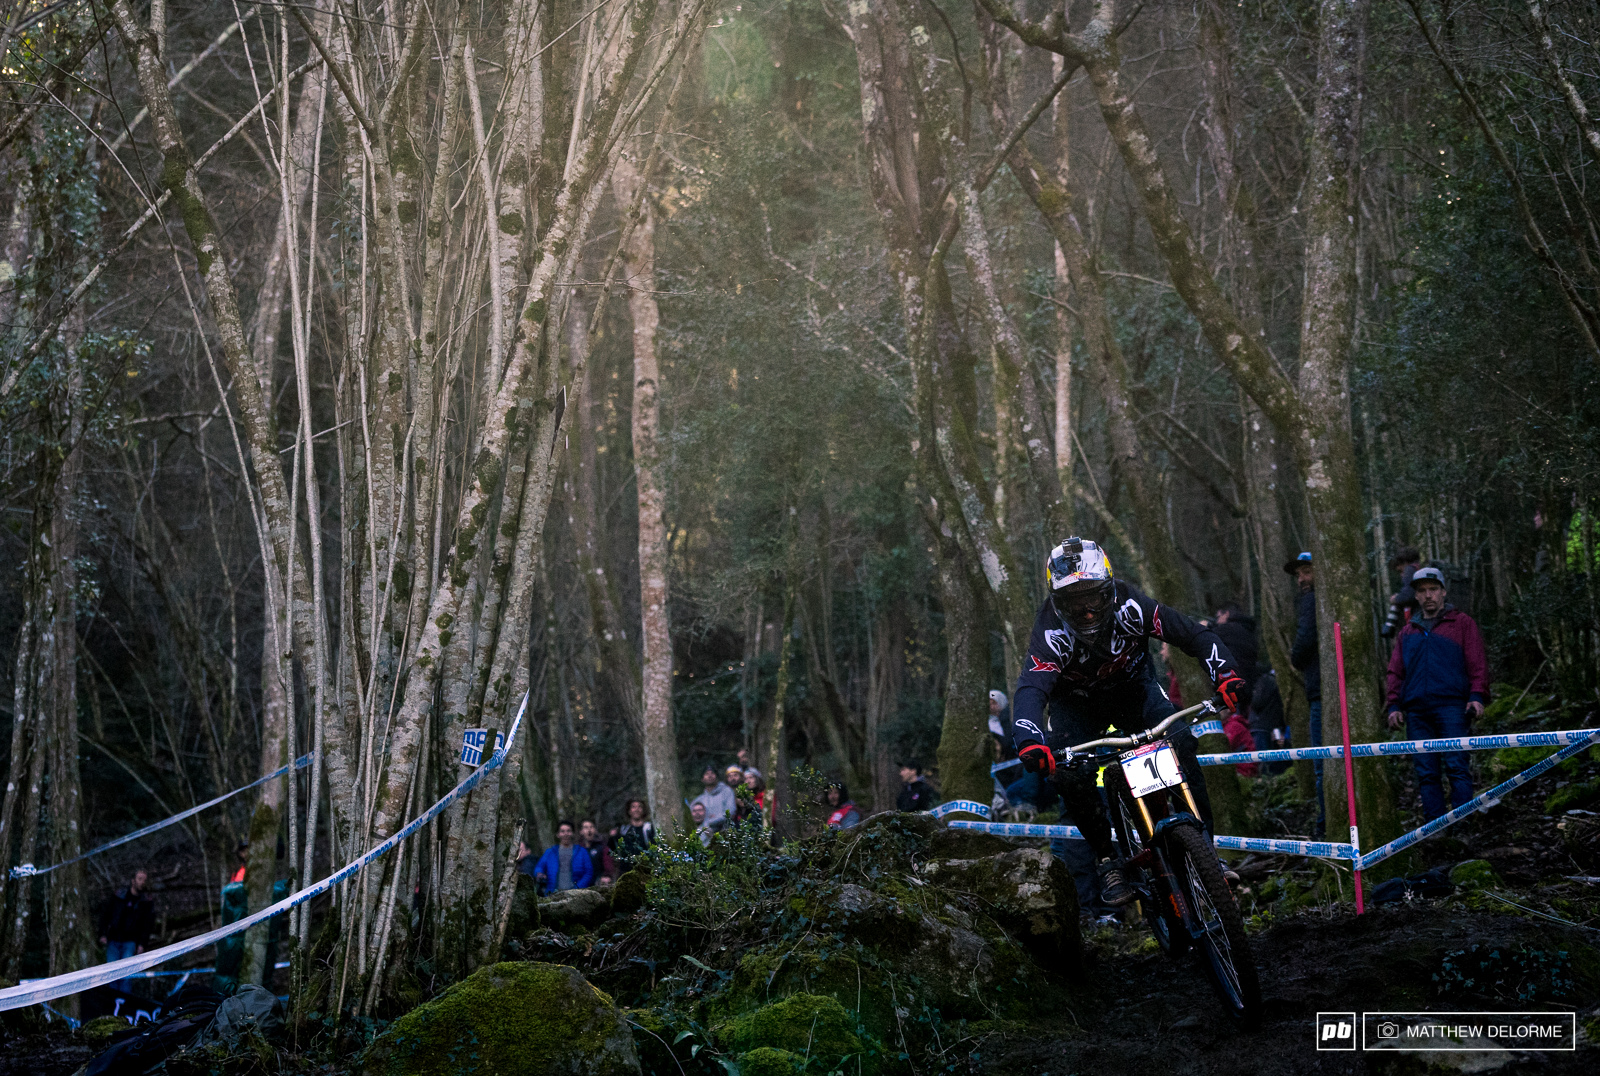 Aaron Gwin kept it upright on the ever-changing track to take the win today. Gwin conceded that it will be an interesting season between he and Loic considering the Frenchman was very close to edging him out today.